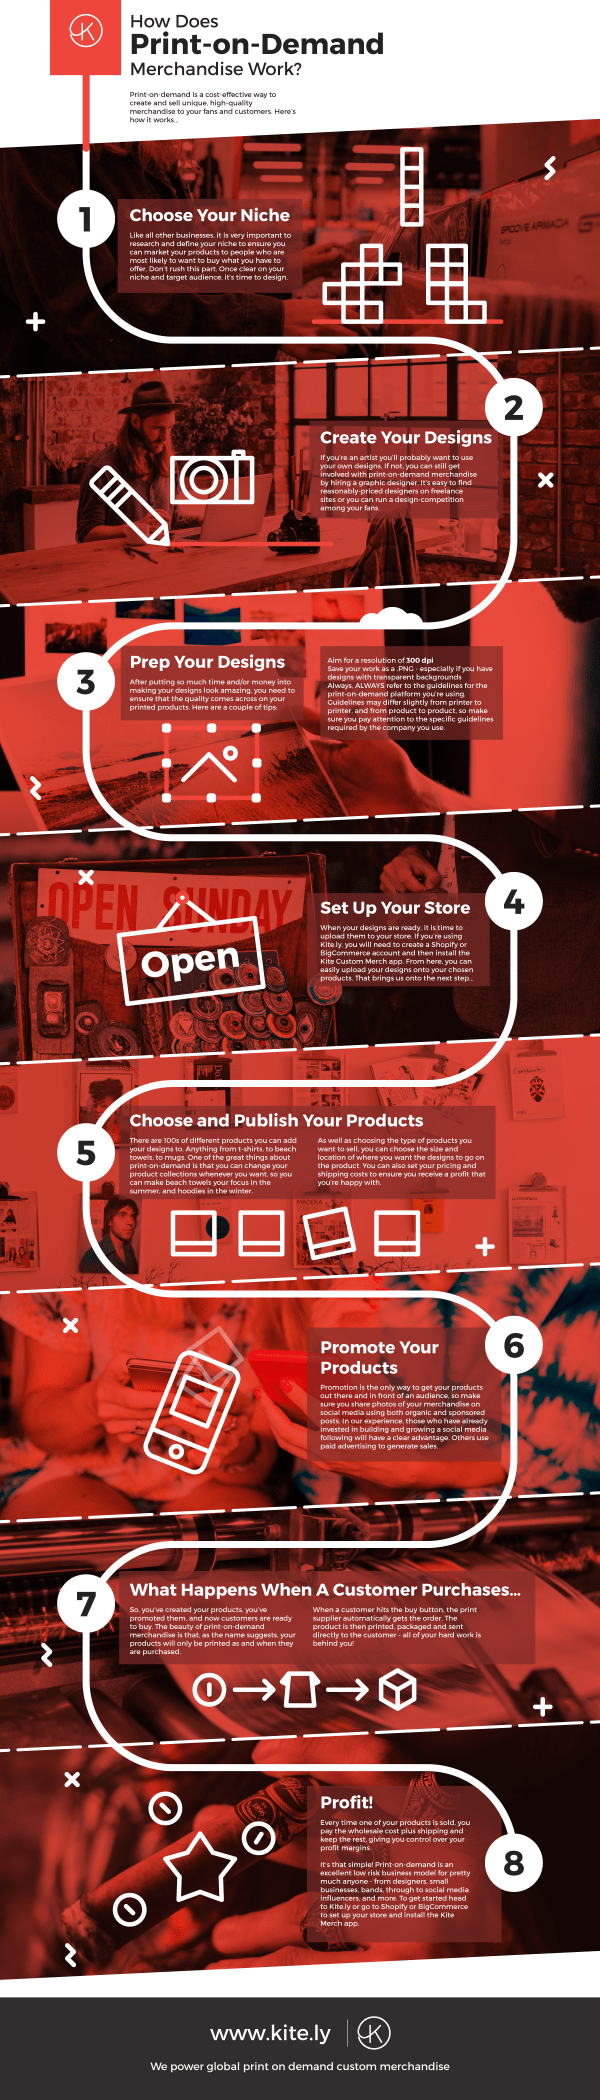 Infographic: How Print on Demand Works?